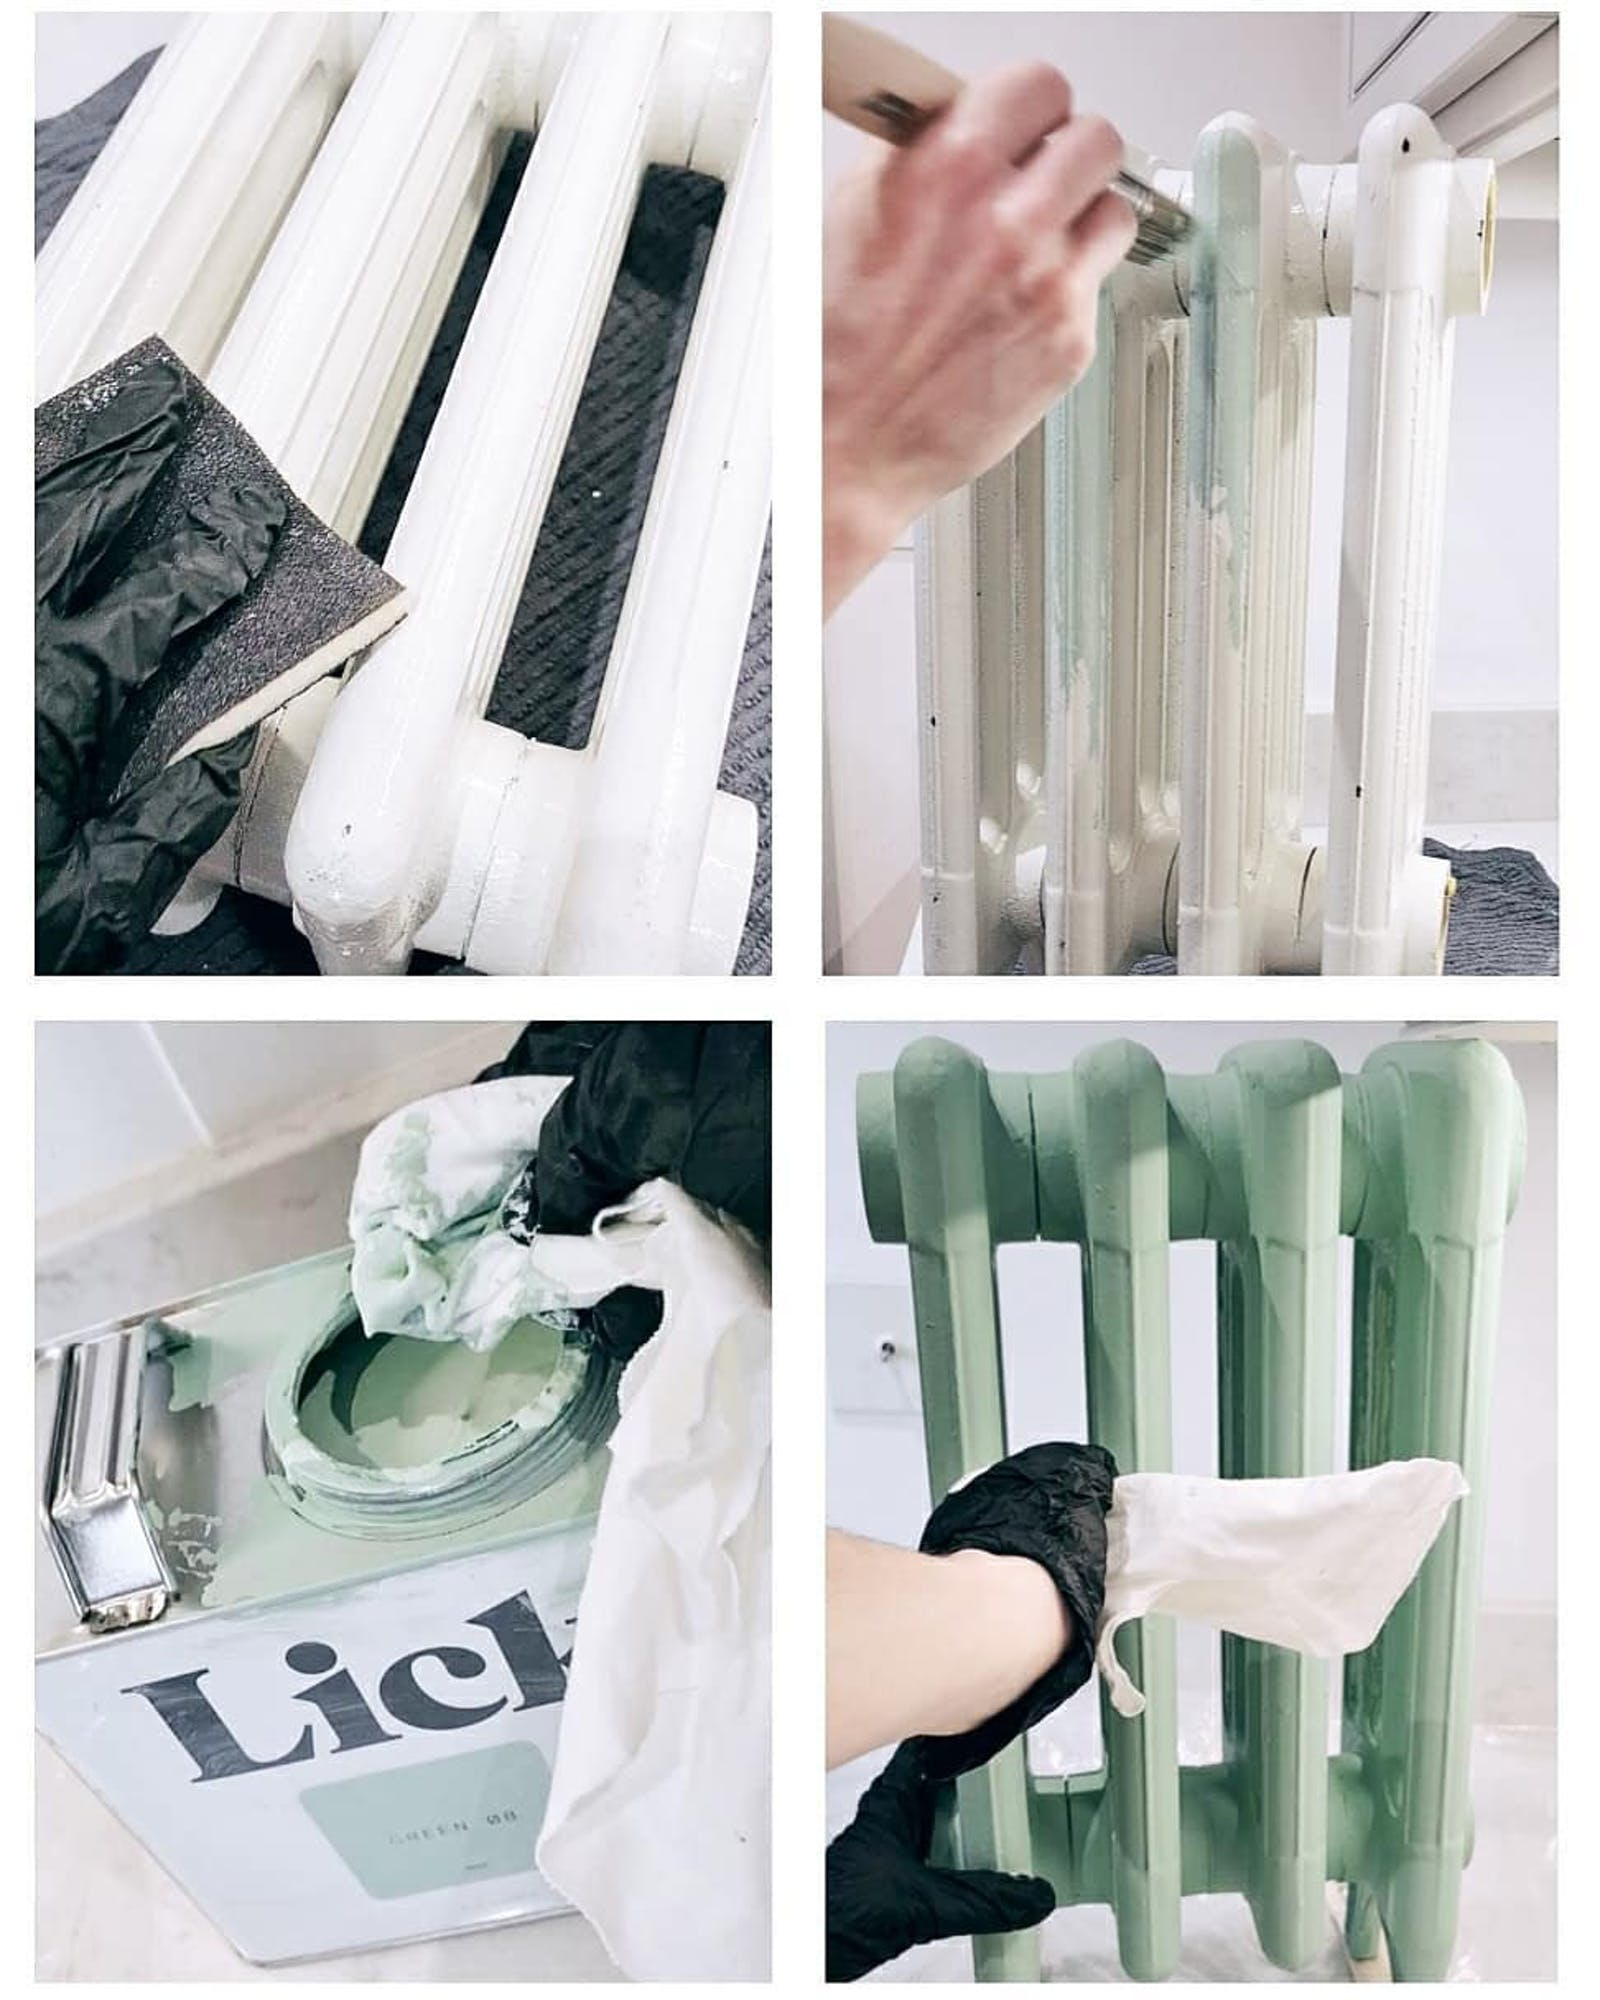 Series of four images that show the process and step by step of painting a radiator in Green 08